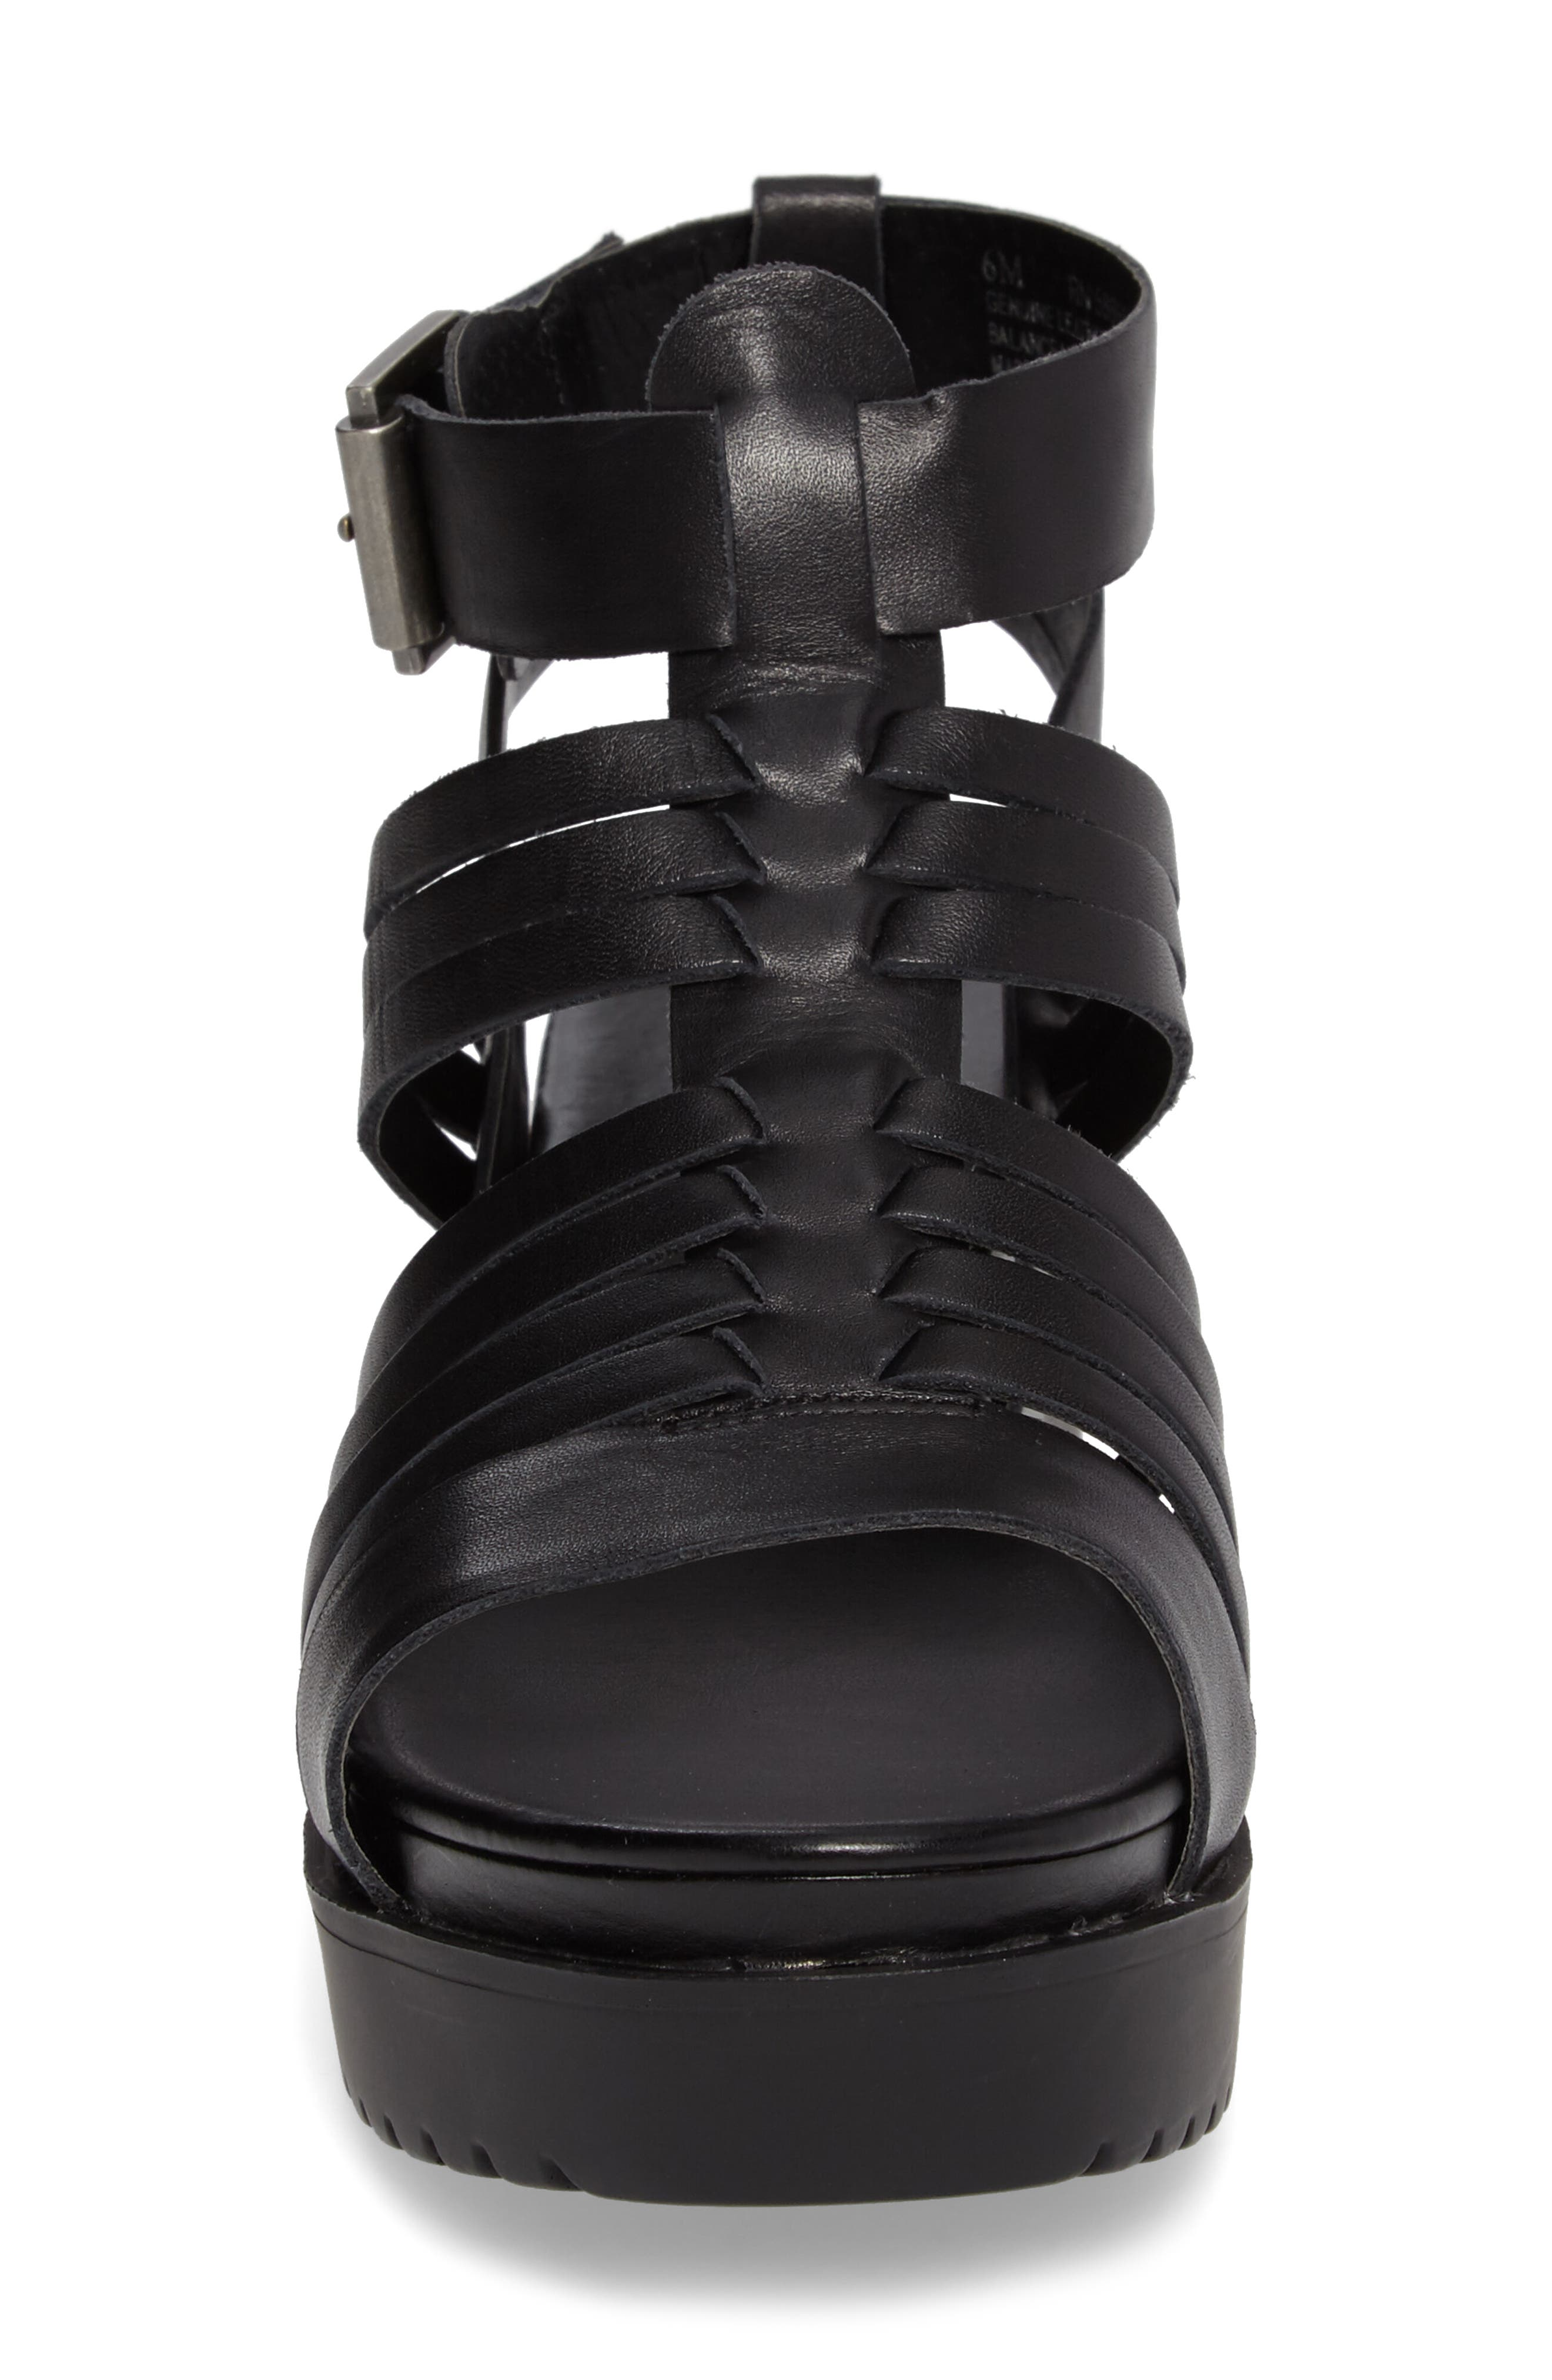 Ronnie Gladiator Platform Sandal,                             Alternate thumbnail 4, color,                             Black Leather